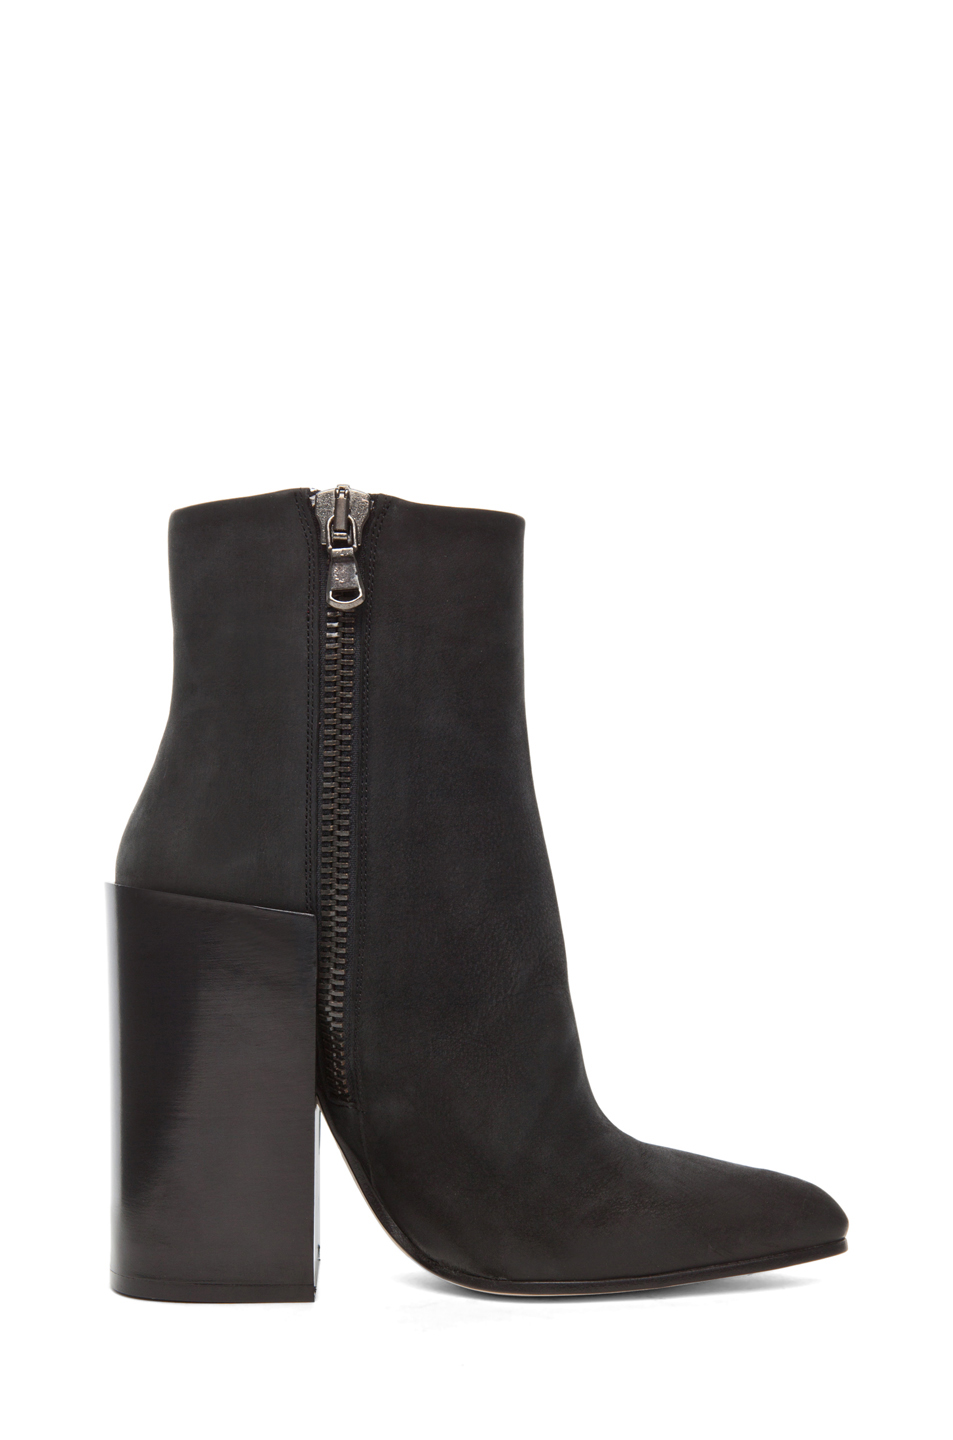 Acne Studios|Tess Bootie in Black